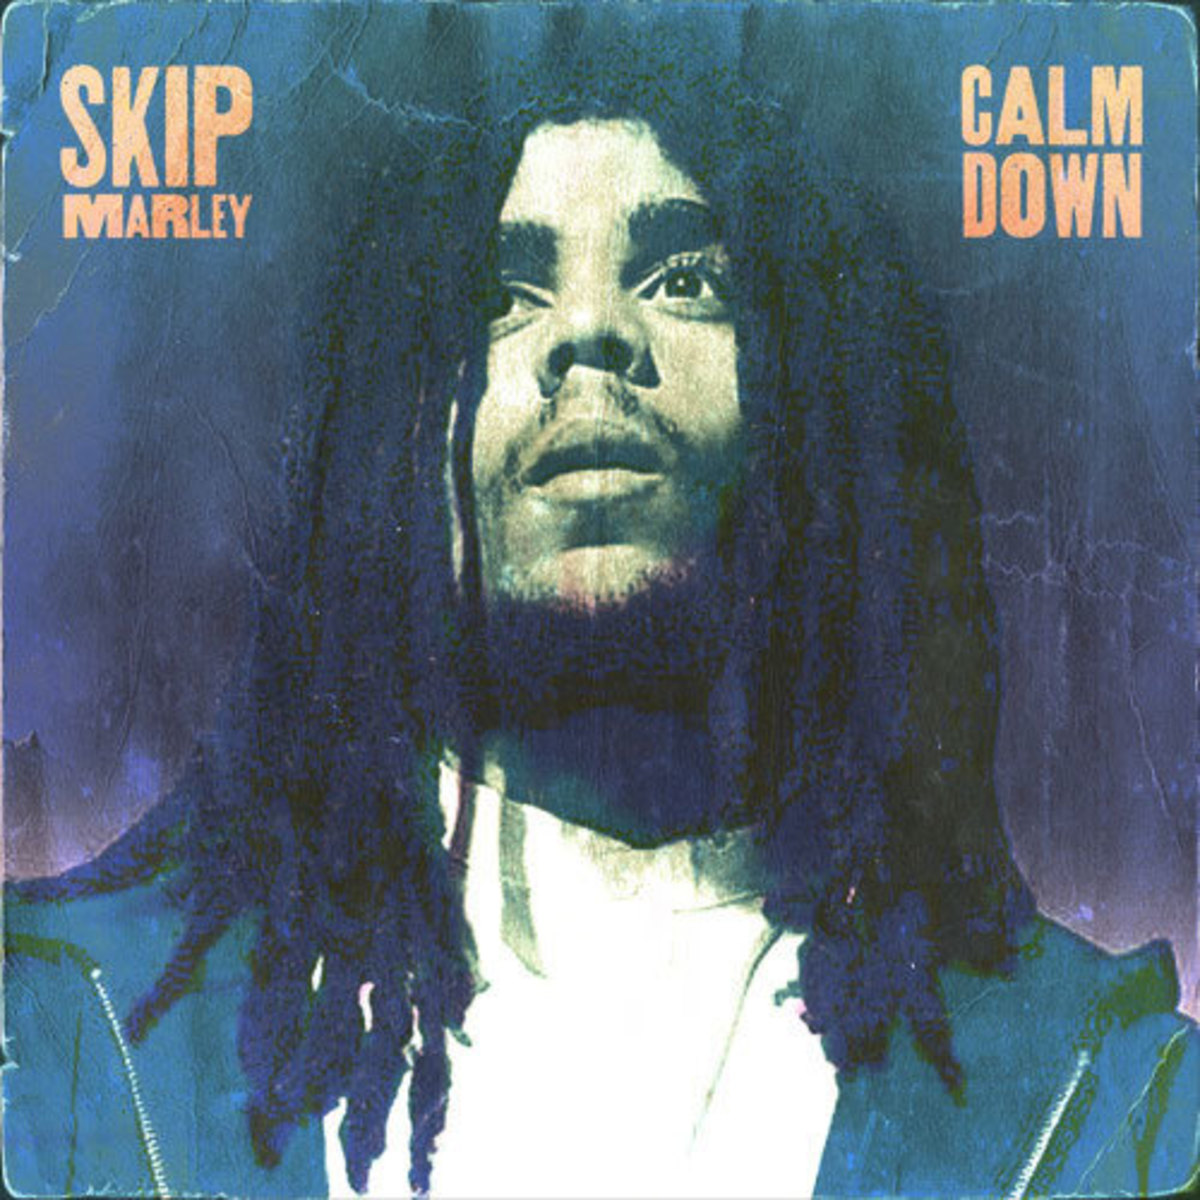 skip-marley-calm-down.jpg